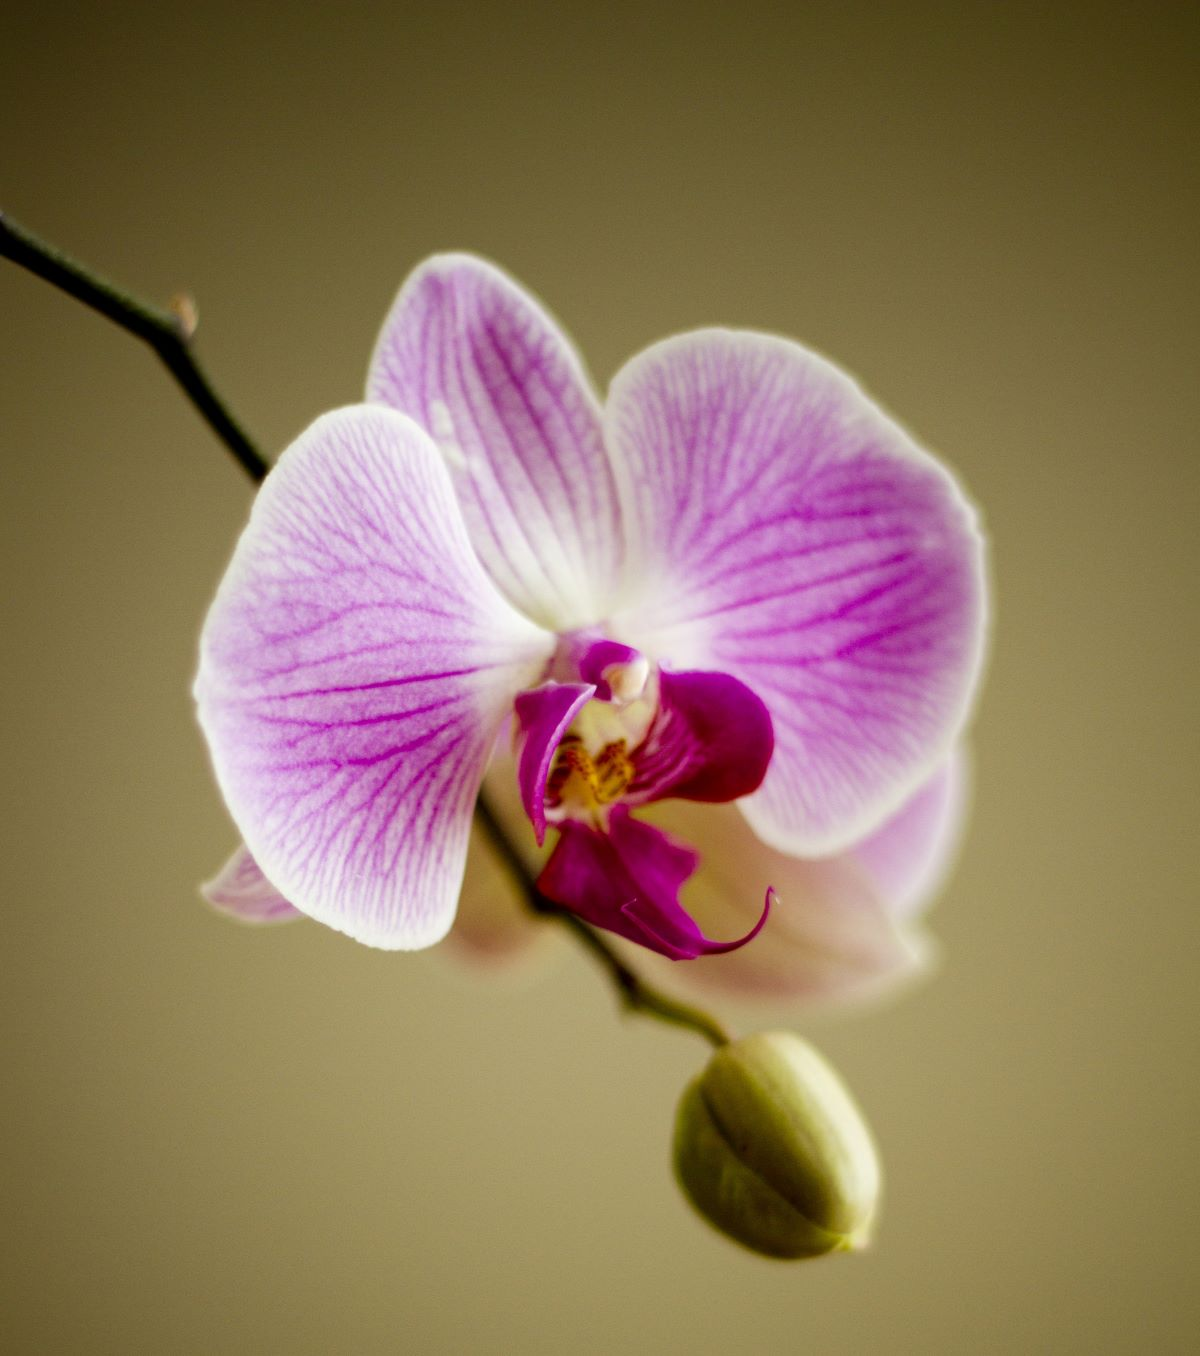 Single orchid flower with darker purple as it fades out to the white edges, and a closed bud below